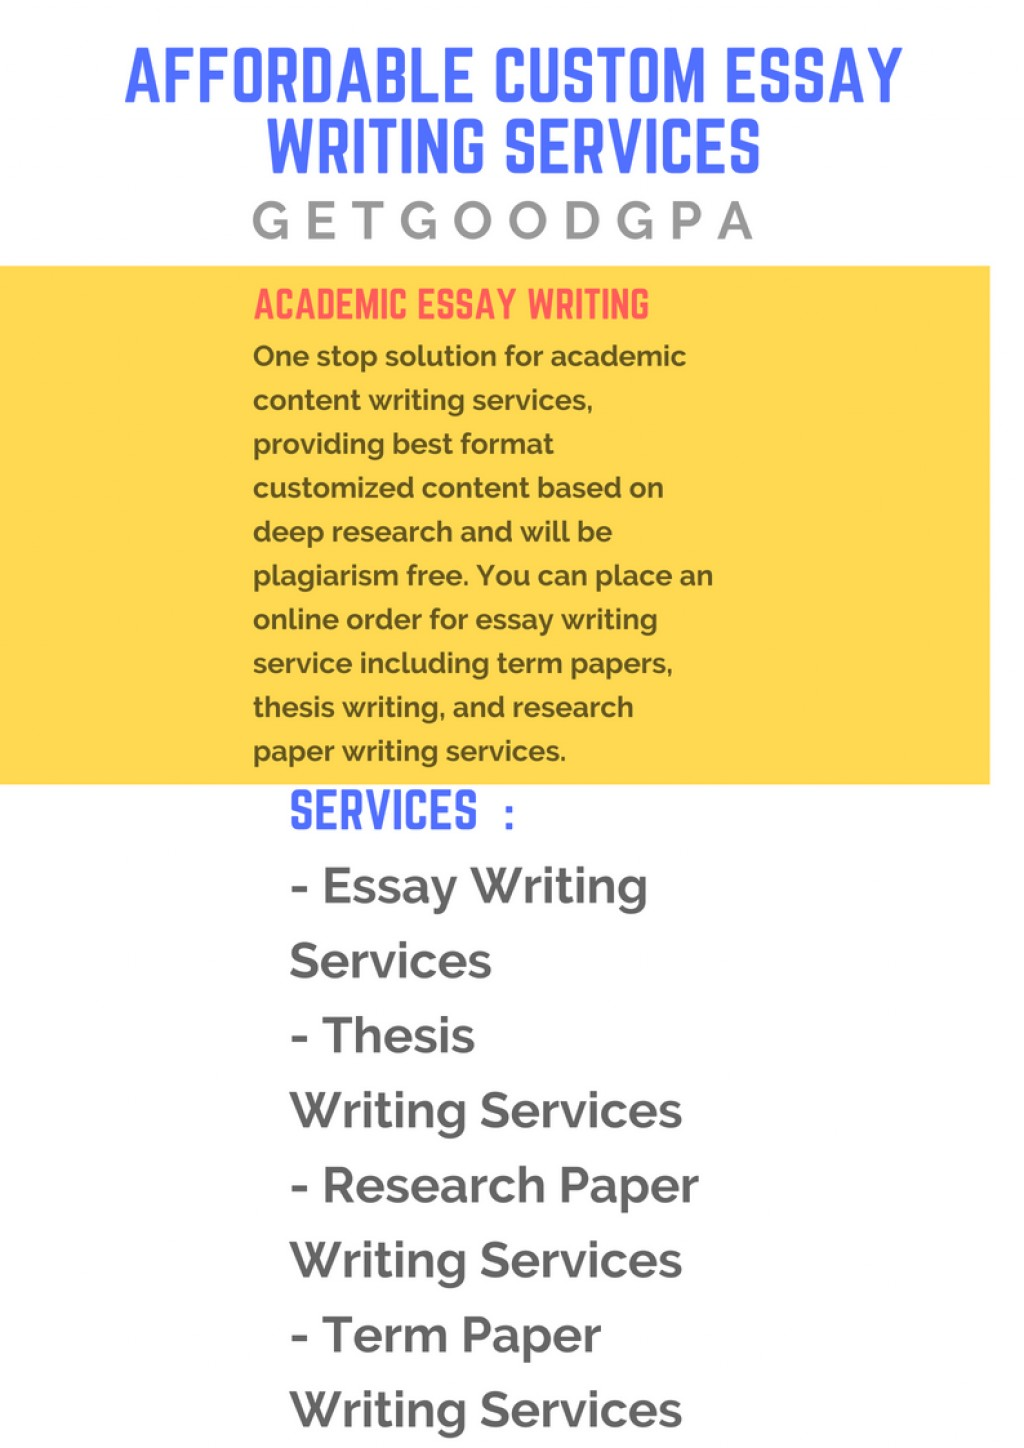 003 1p24u5izogrgxlkfzqmxvgq Best Online Research Paper Shocking Writers Academic Writing Service Large